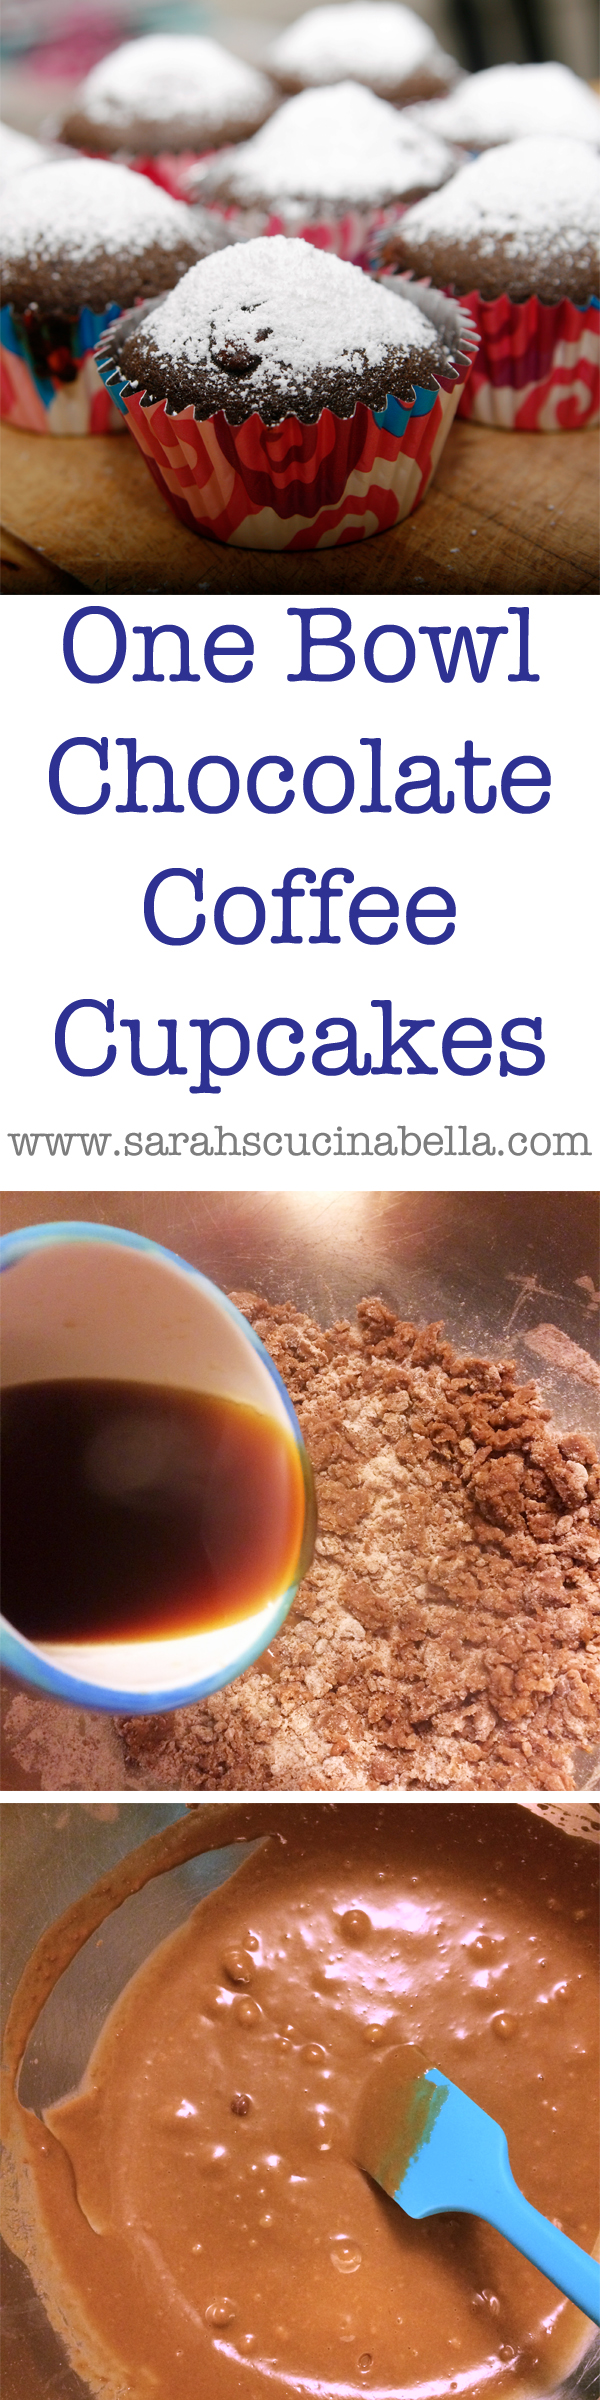 One Bowl Chocolate Coffee Cupcake Recipe - Sarah's Cucina ...